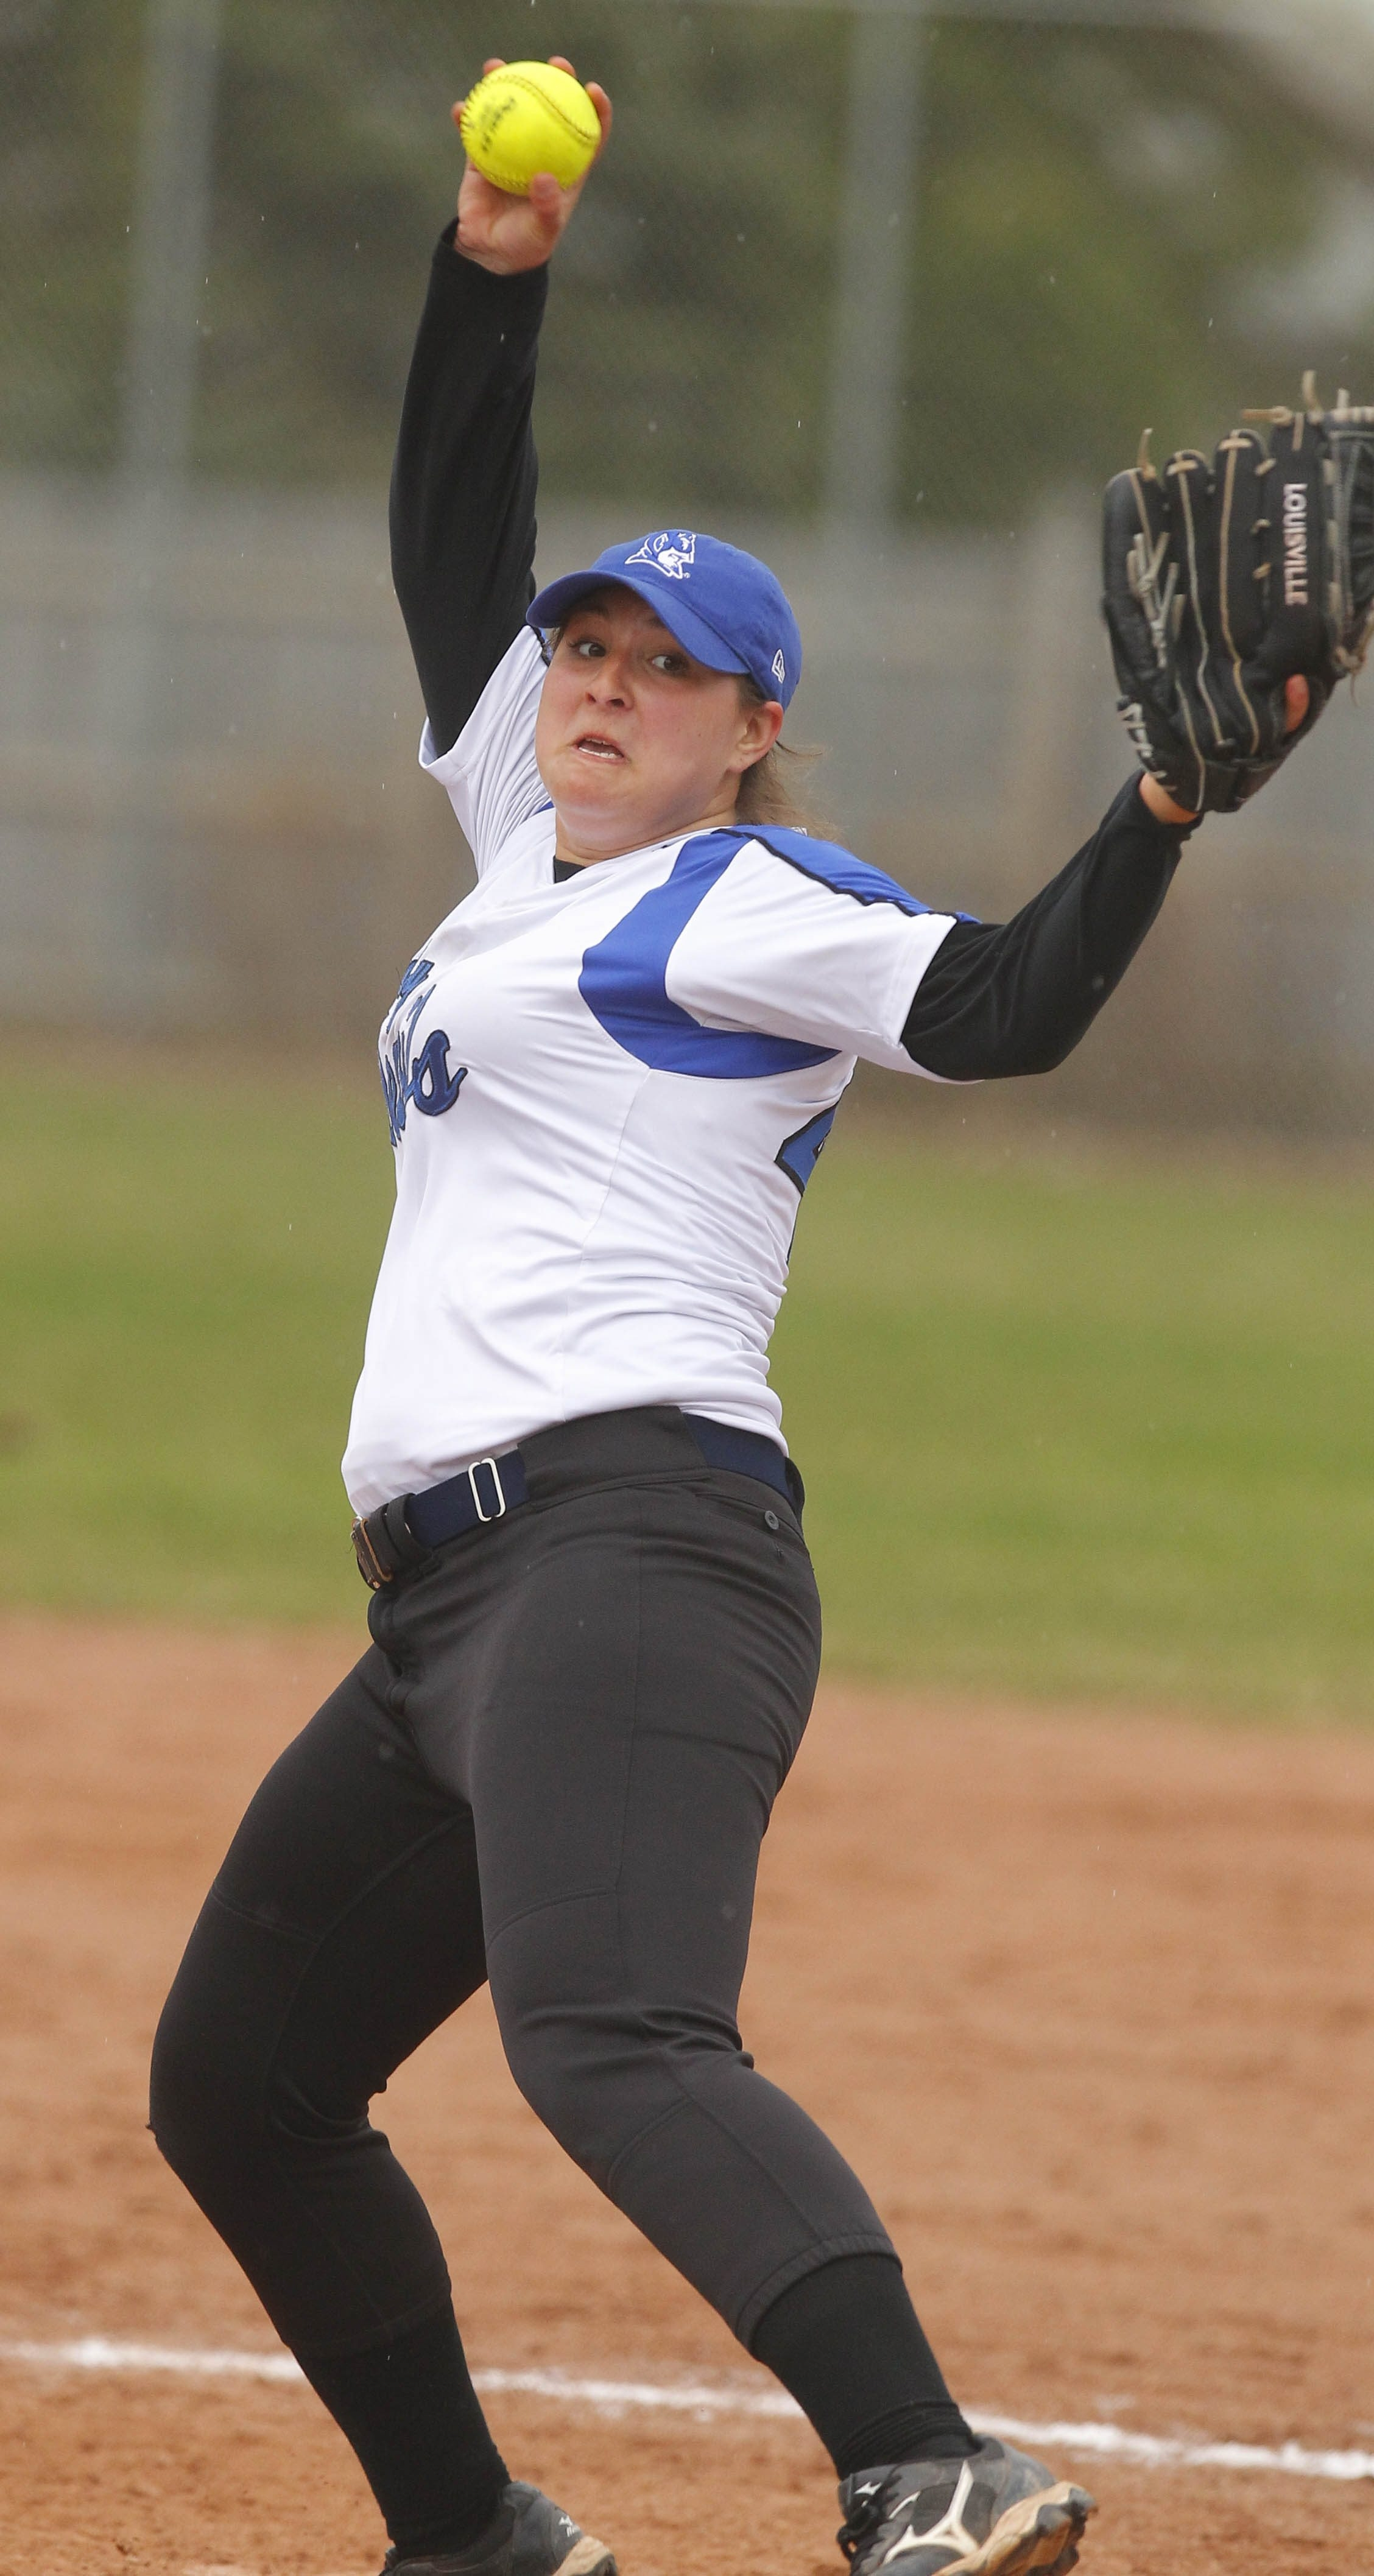 Kenmore West's Charlotte Miller had a solid game Monday during in 15-3 win over No. 5 ranked Niagara Falls.